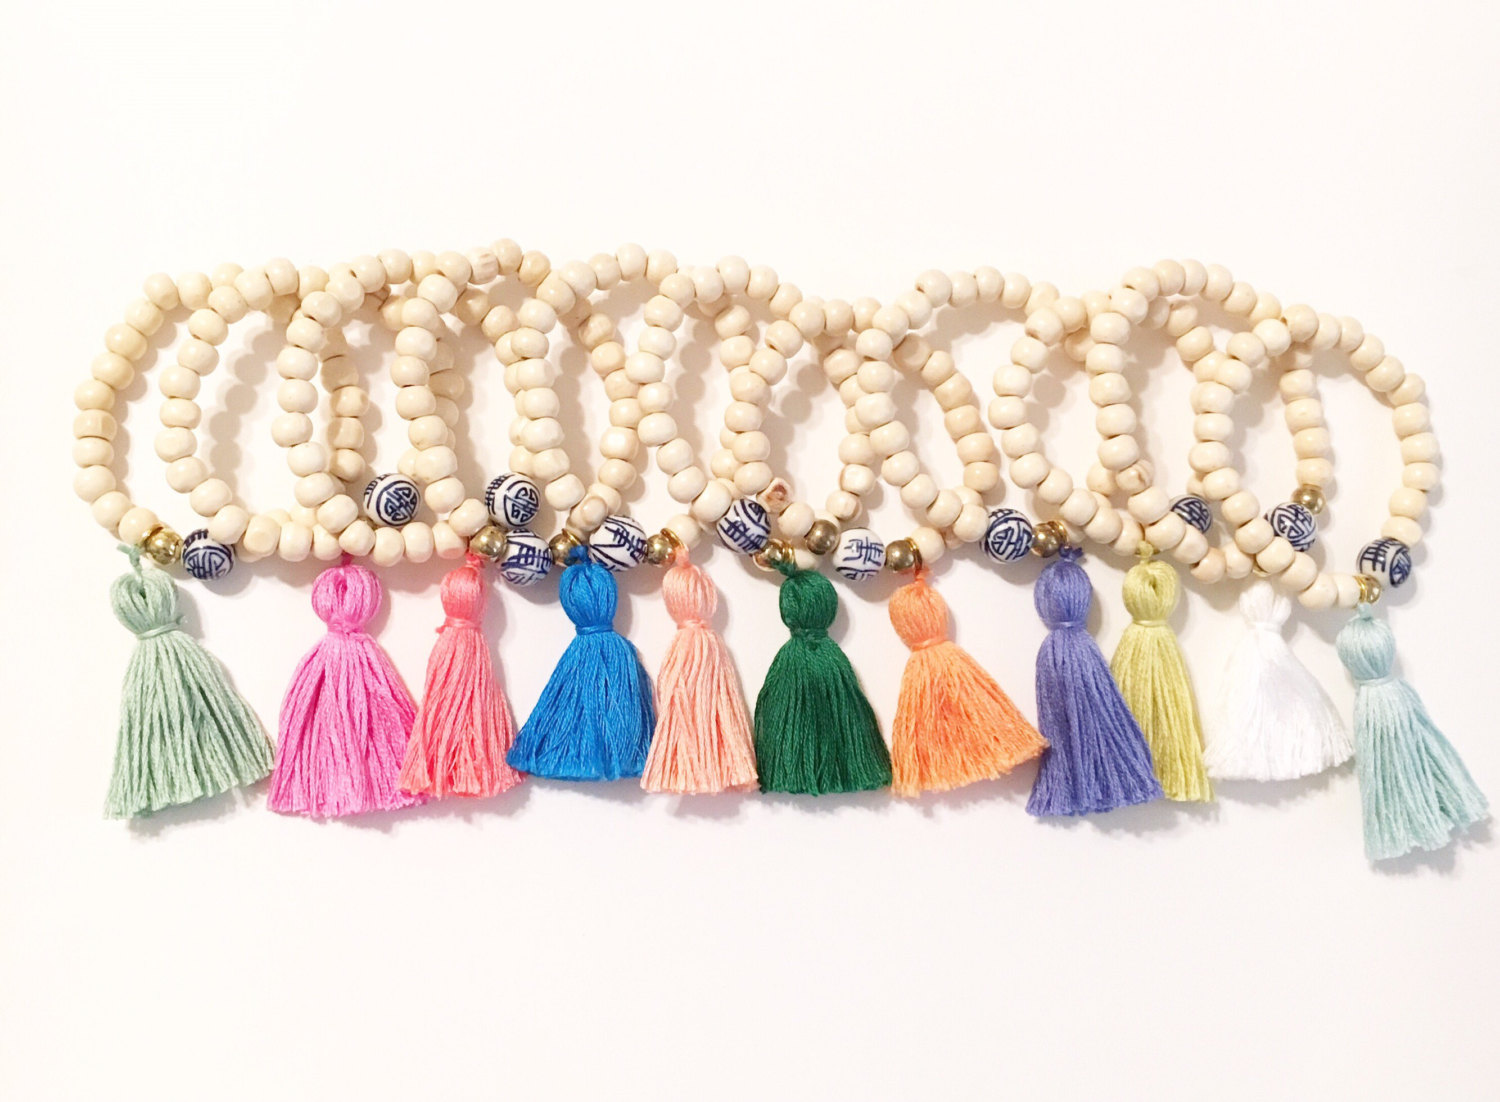 Tassel bracelets by the Tiny Tassel